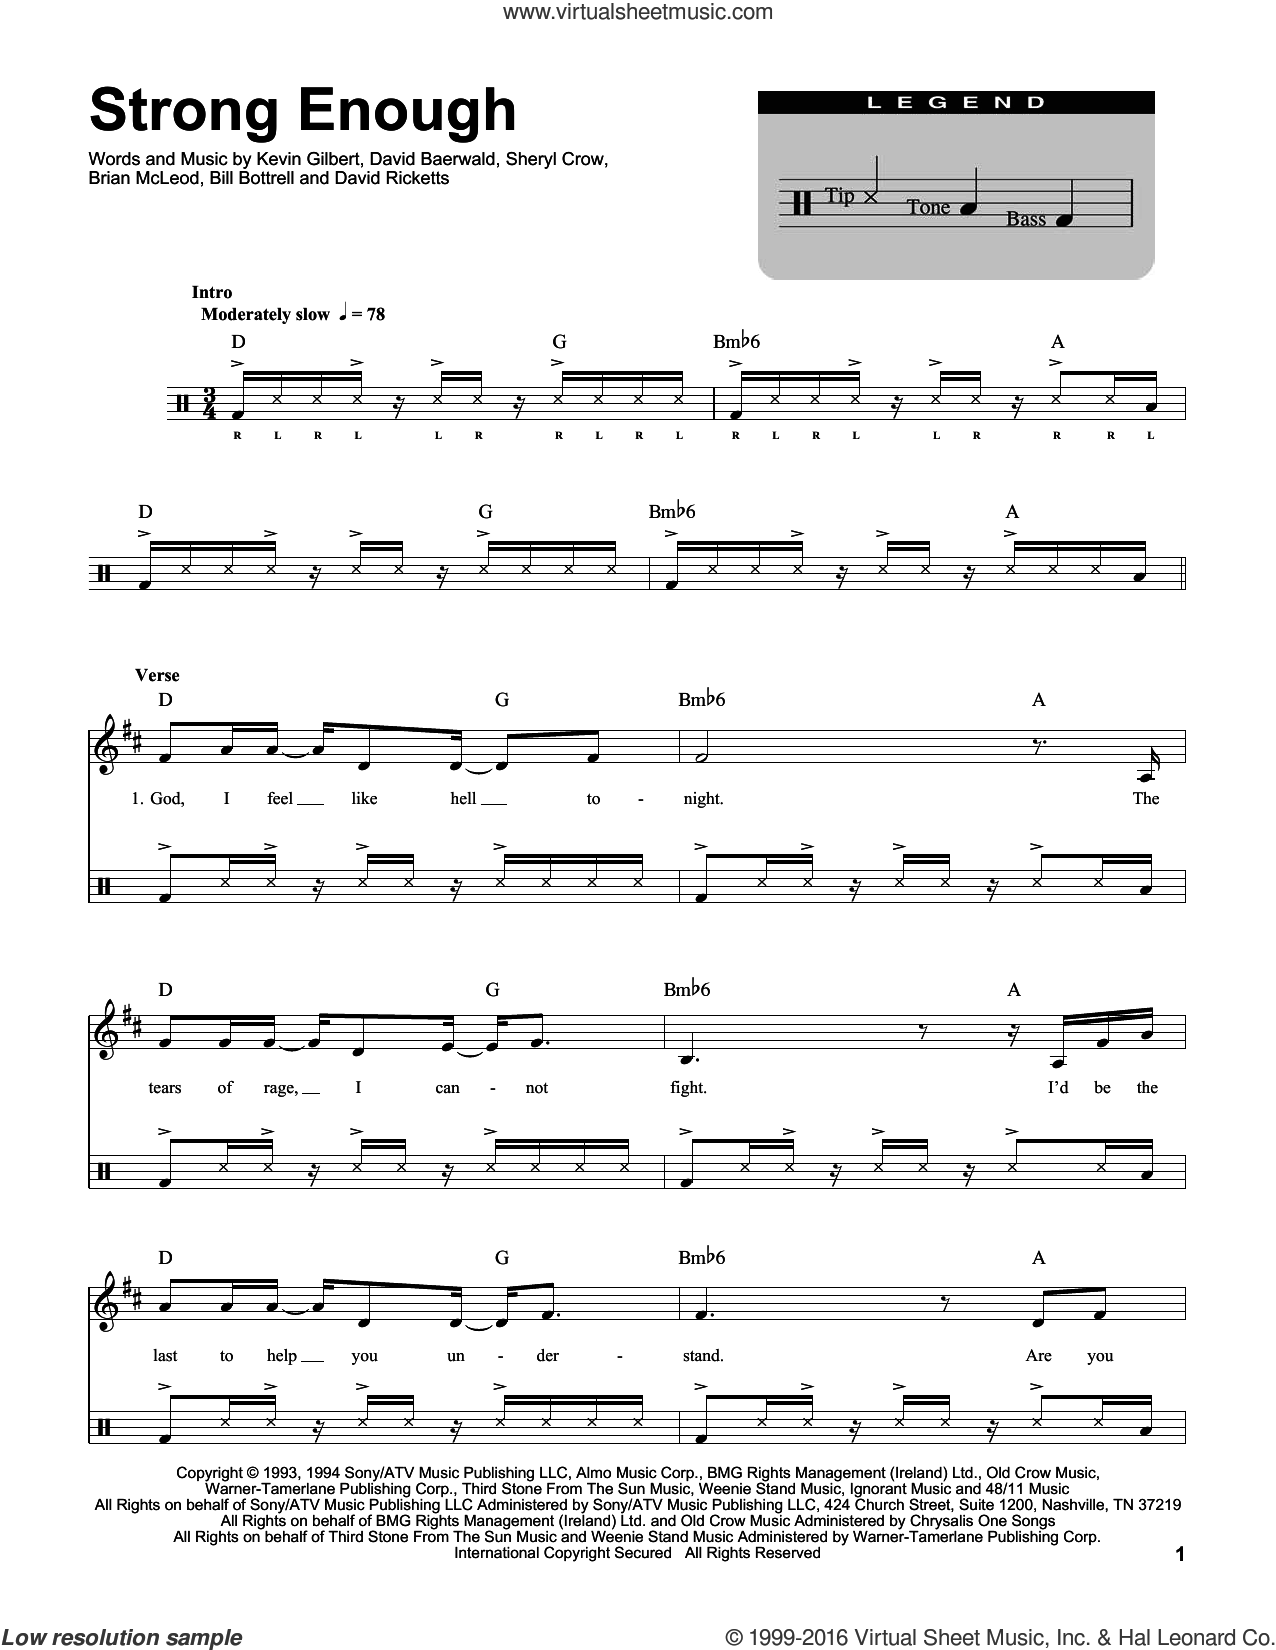 Strong Enough sheet music for drums by Kevin Gilbert, Bill Bottrell, Brian MacLeod, David Baerwald, David Ricketts and Sheryl Crow. Score Image Preview.